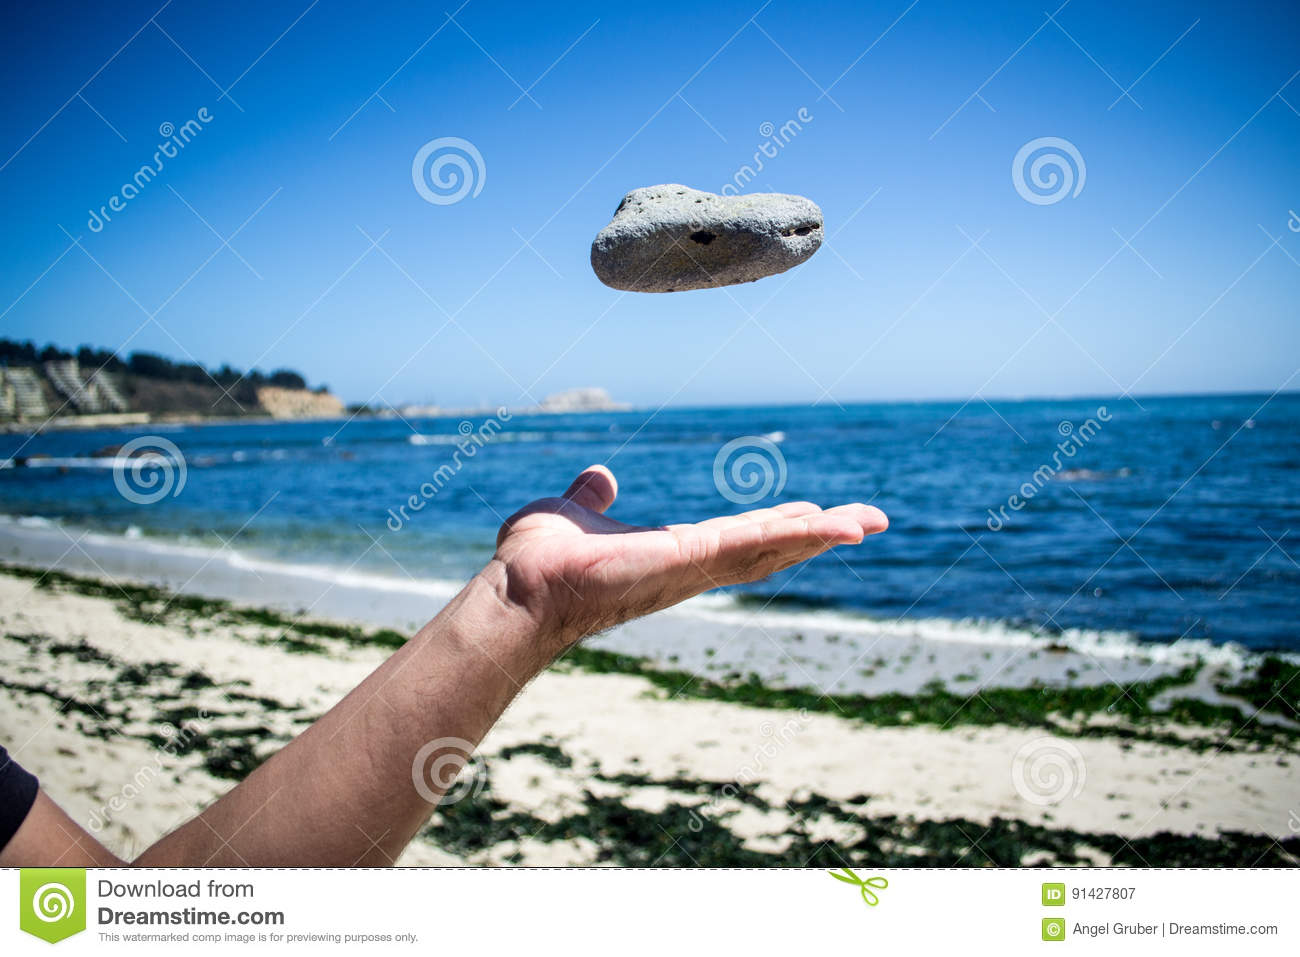 Hand throwing a stone